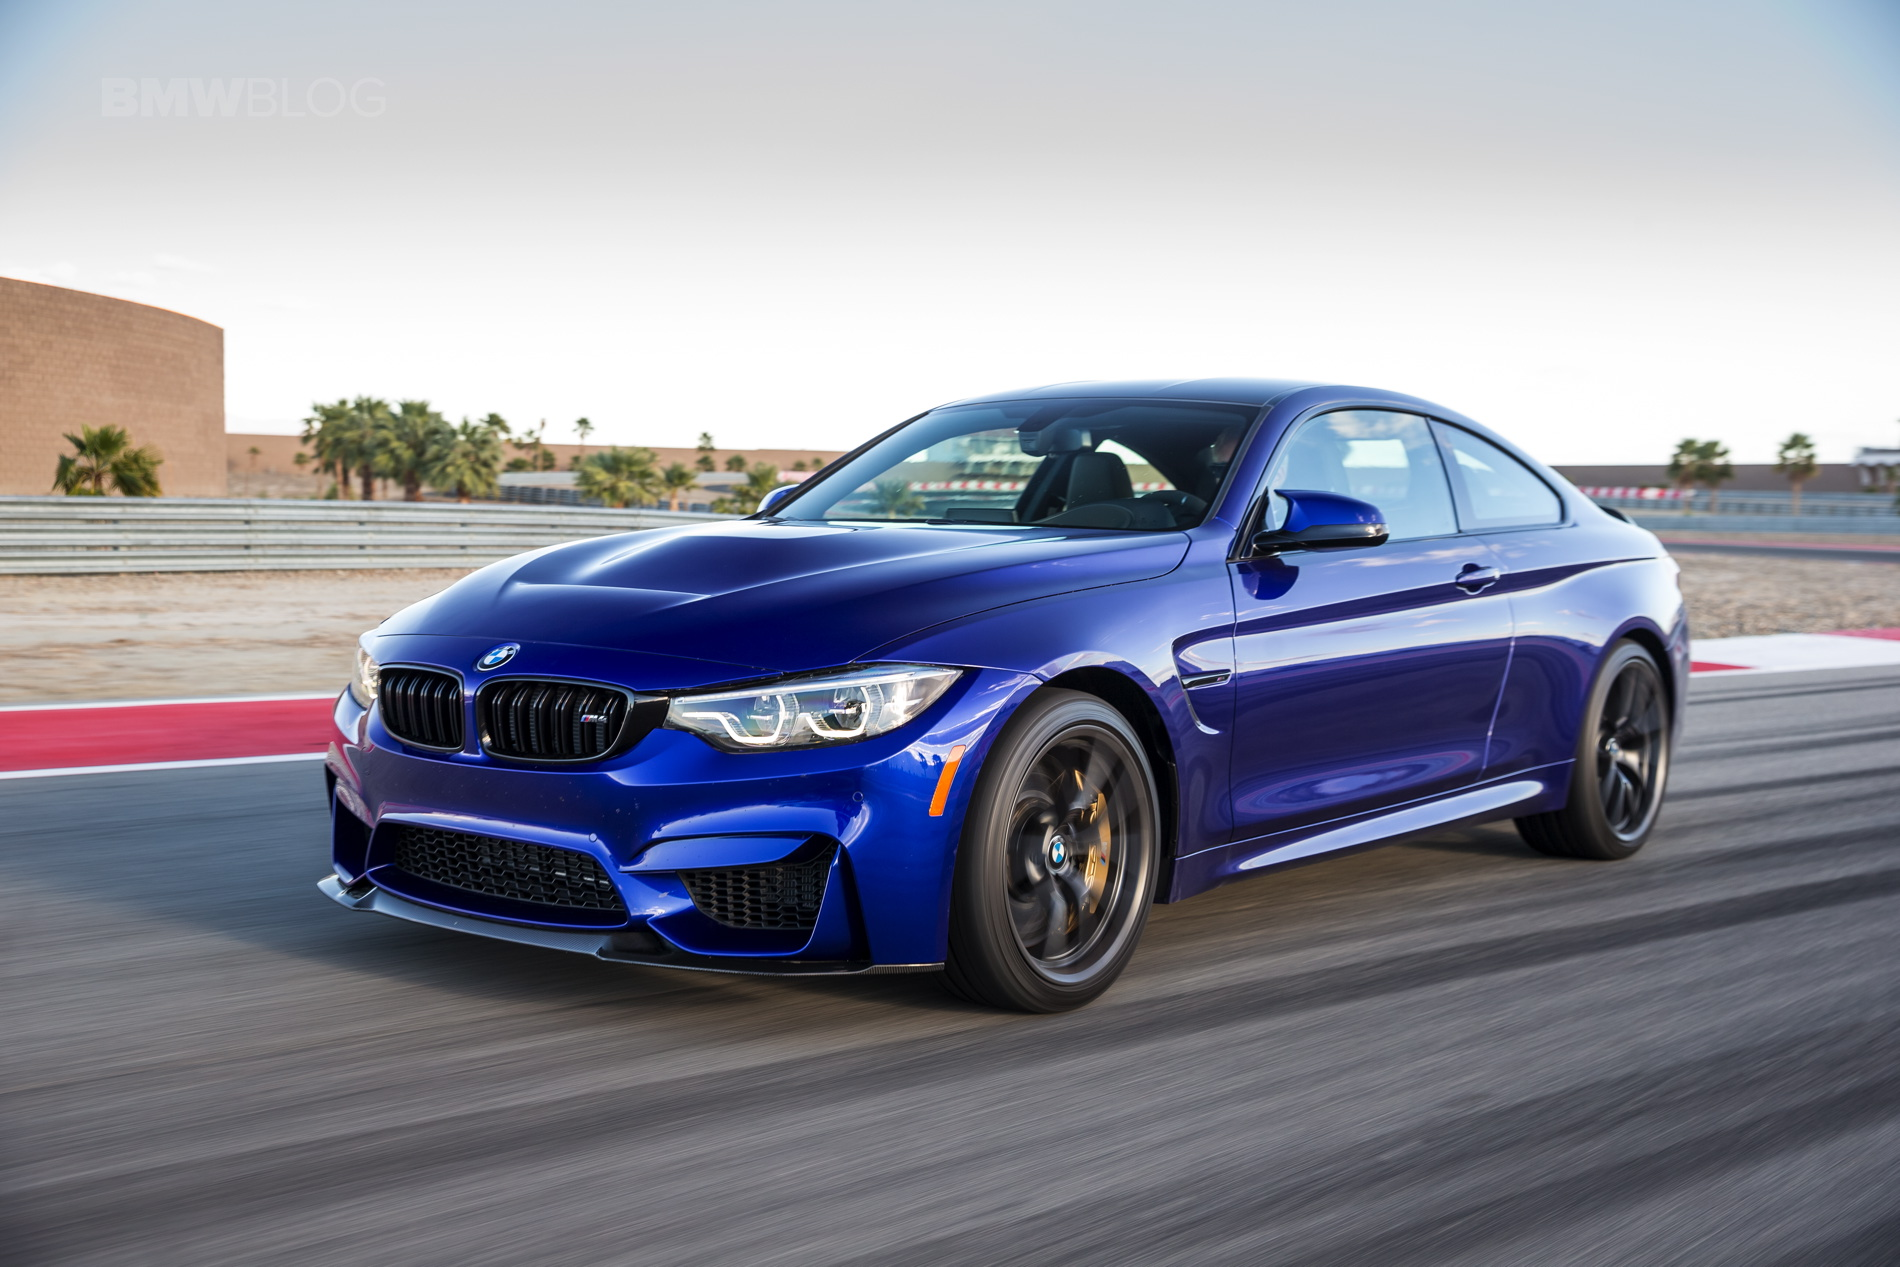 2018 BMW M4 CS Photo Gallery 35